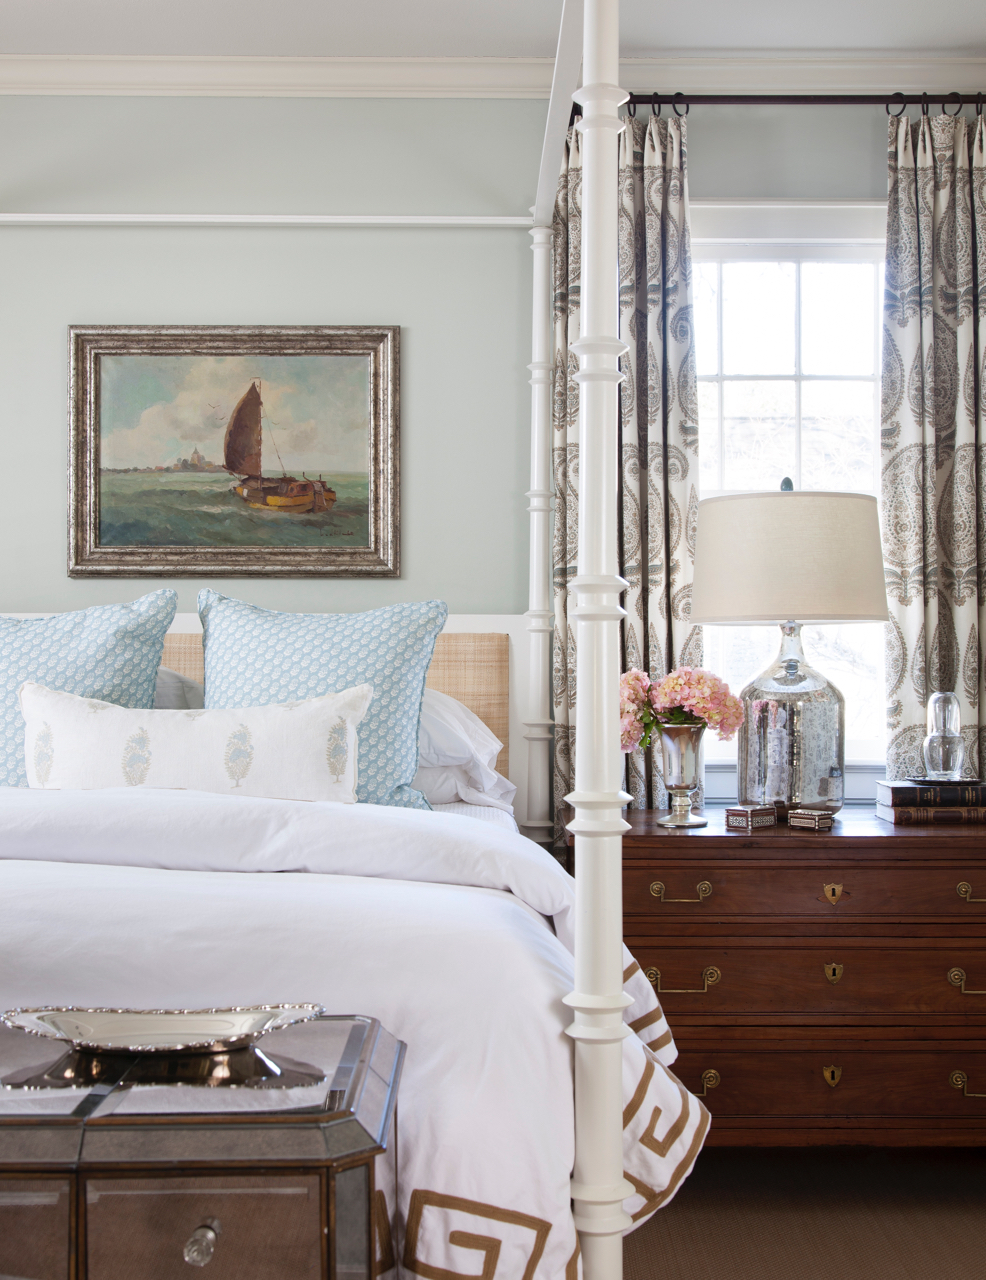 Bedroom - Pemberton Heights, Austin, TX by Meredith Ellis Design